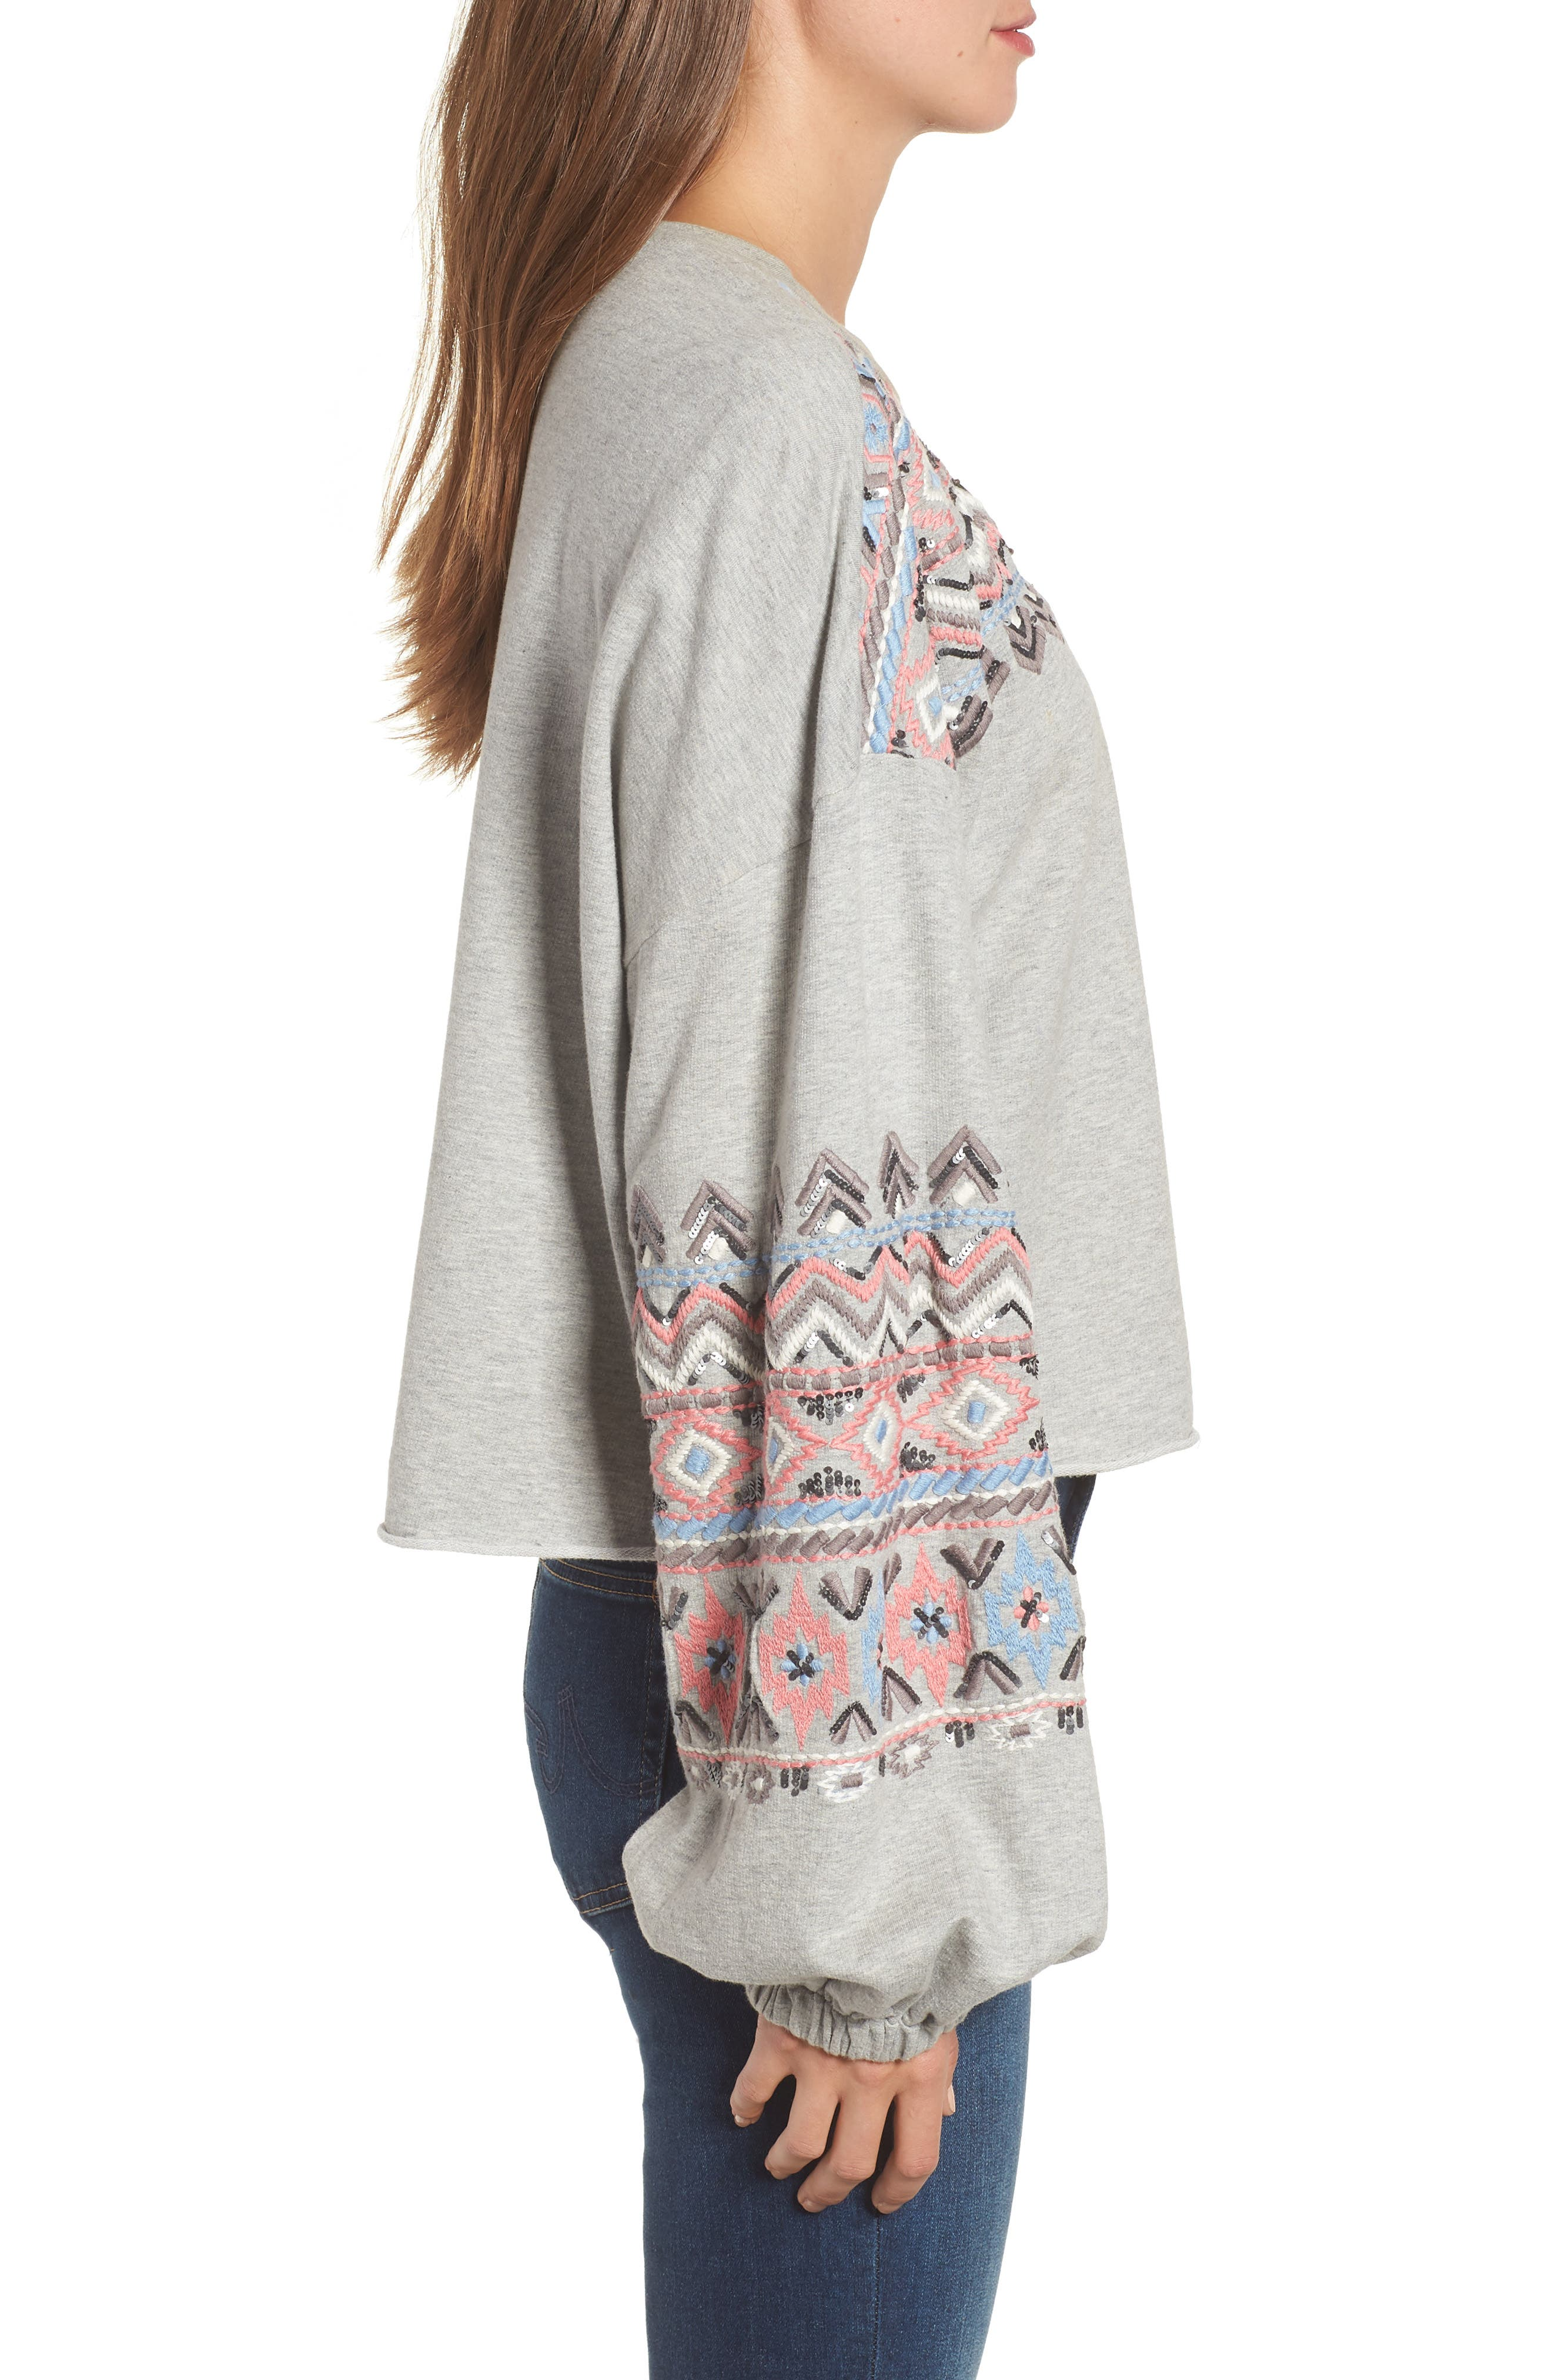 Embroidered Beaded Sweatshirt,                             Alternate thumbnail 3, color,                             GREY